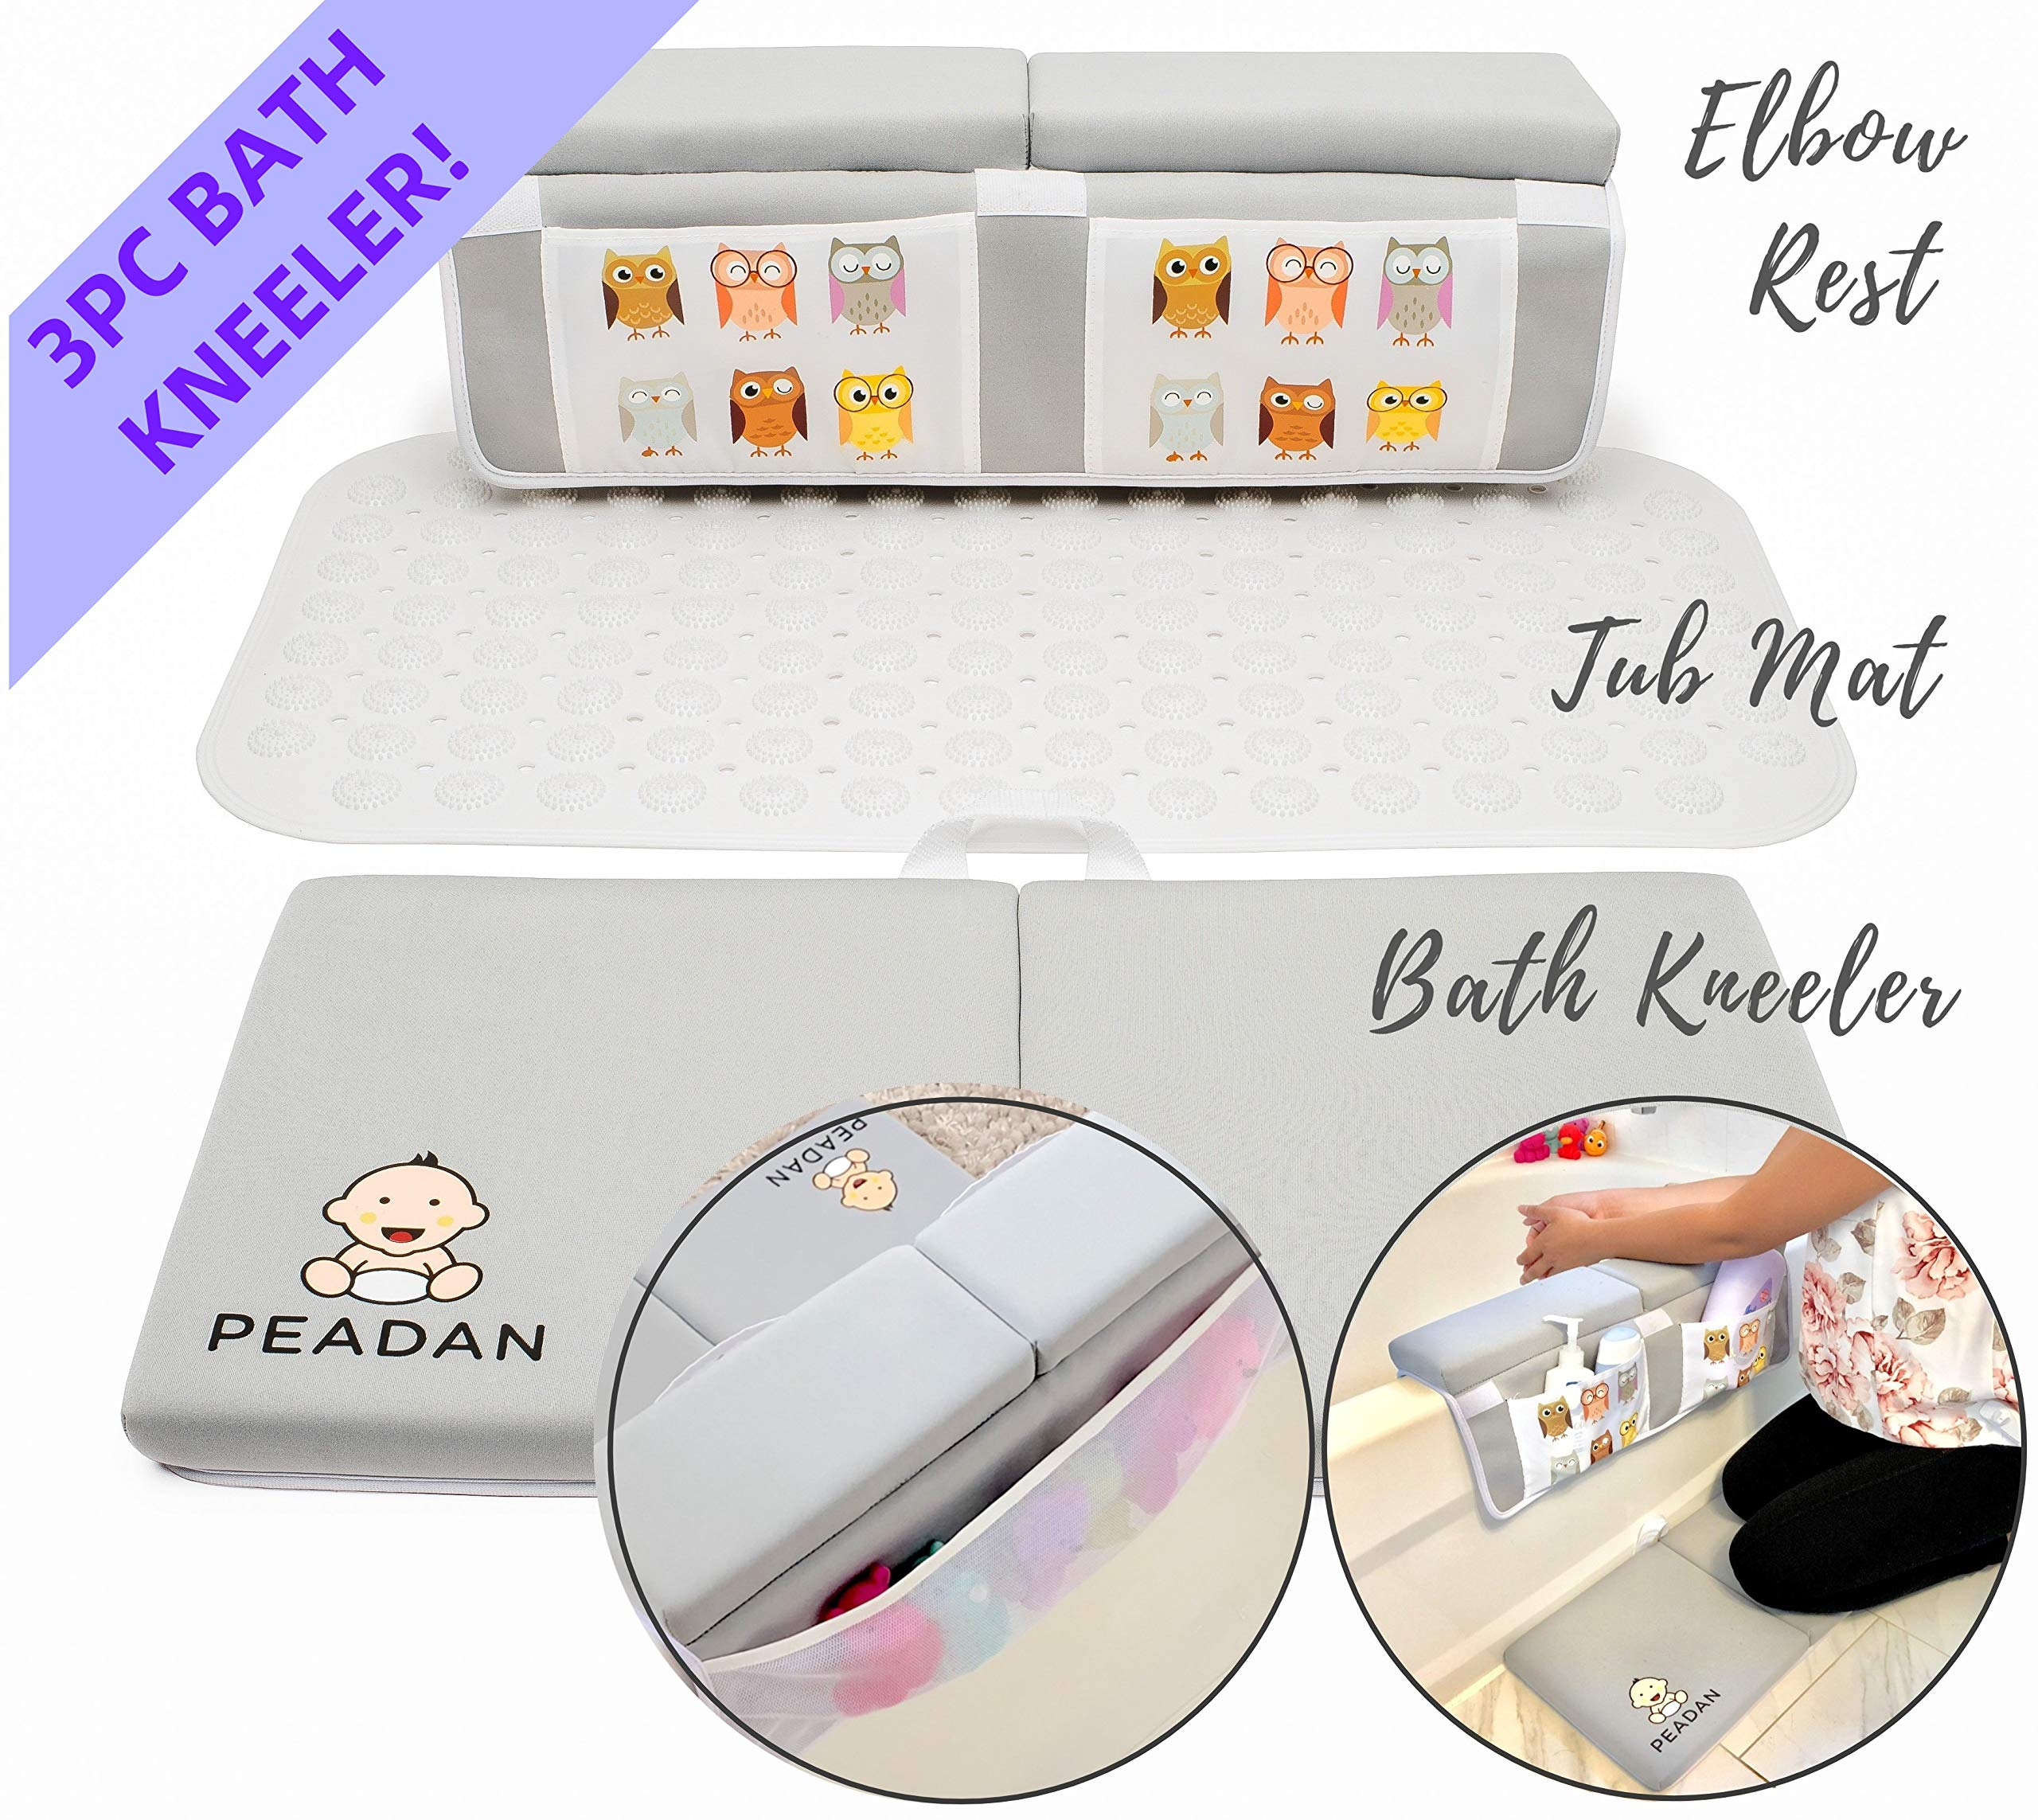 3-Piece Baby Bath Time Essentials Set w/Bath Kneeler, Elbow Rest Toy Storage & Non-Slip Tub Mat, 4 Suction Cups, Fun owl Design w/Large Pockets for Bathing Essentials & Toy Storage by PEADAN KIDS